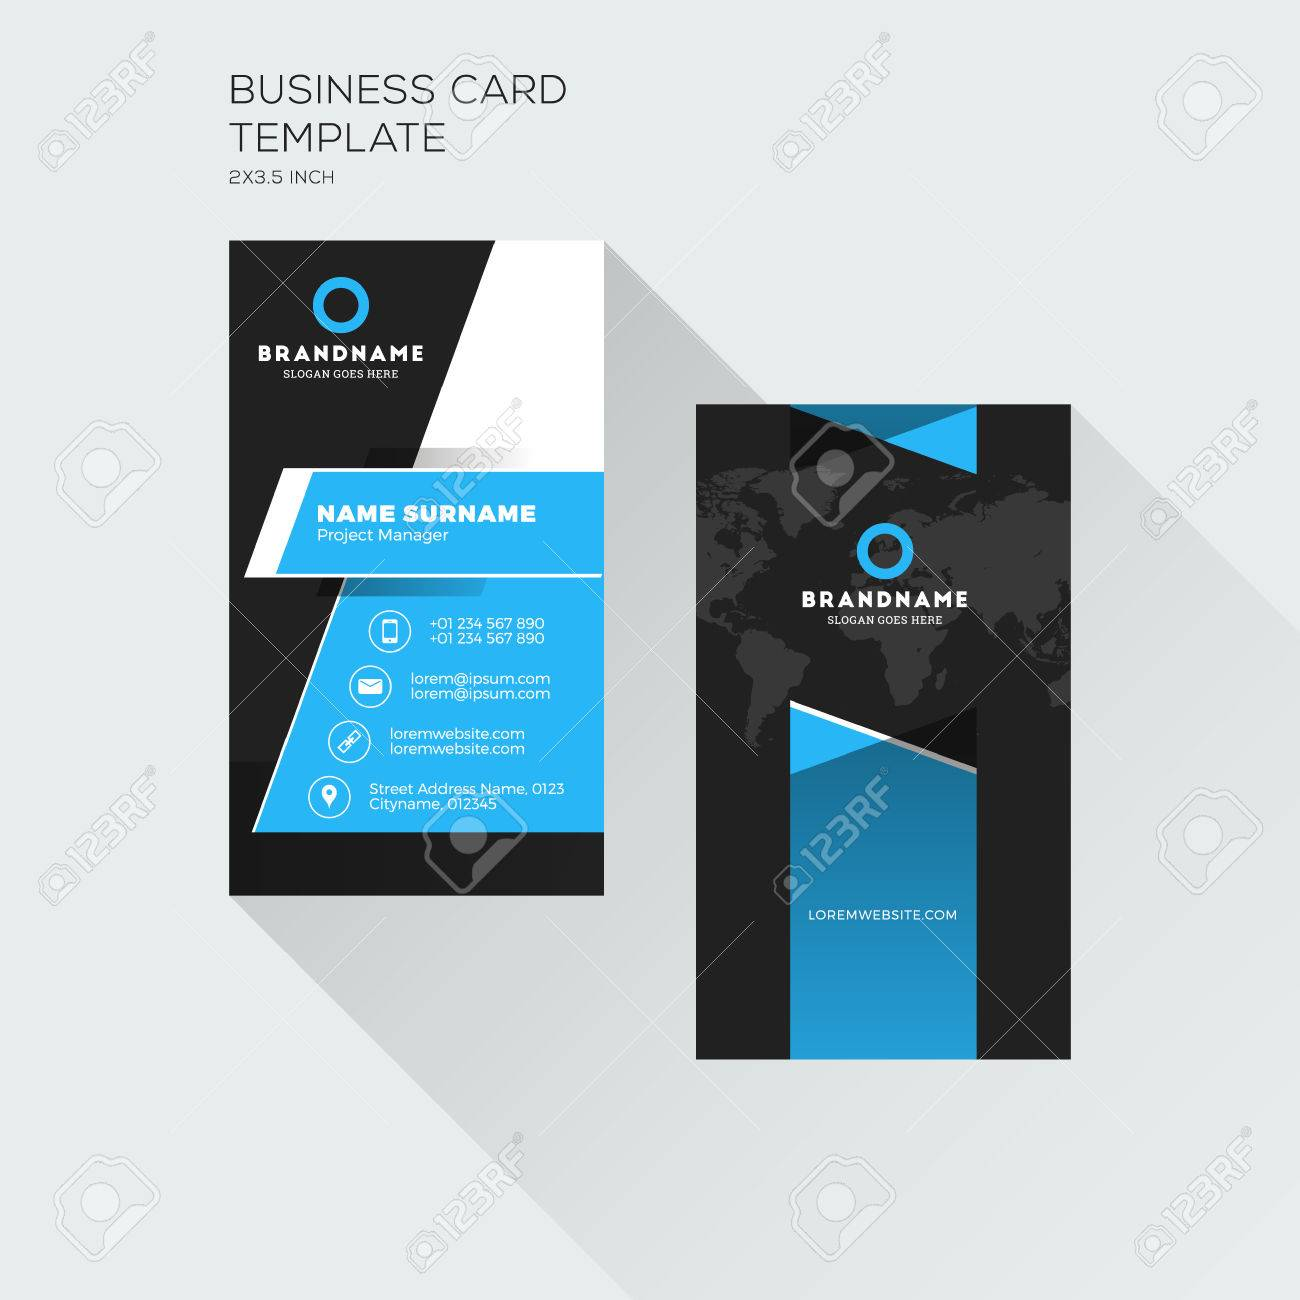 Vertical business card print template personal visiting card vector vertical business card print template personal visiting card black and blue colors clean flat design vector illustration cheaphphosting Gallery